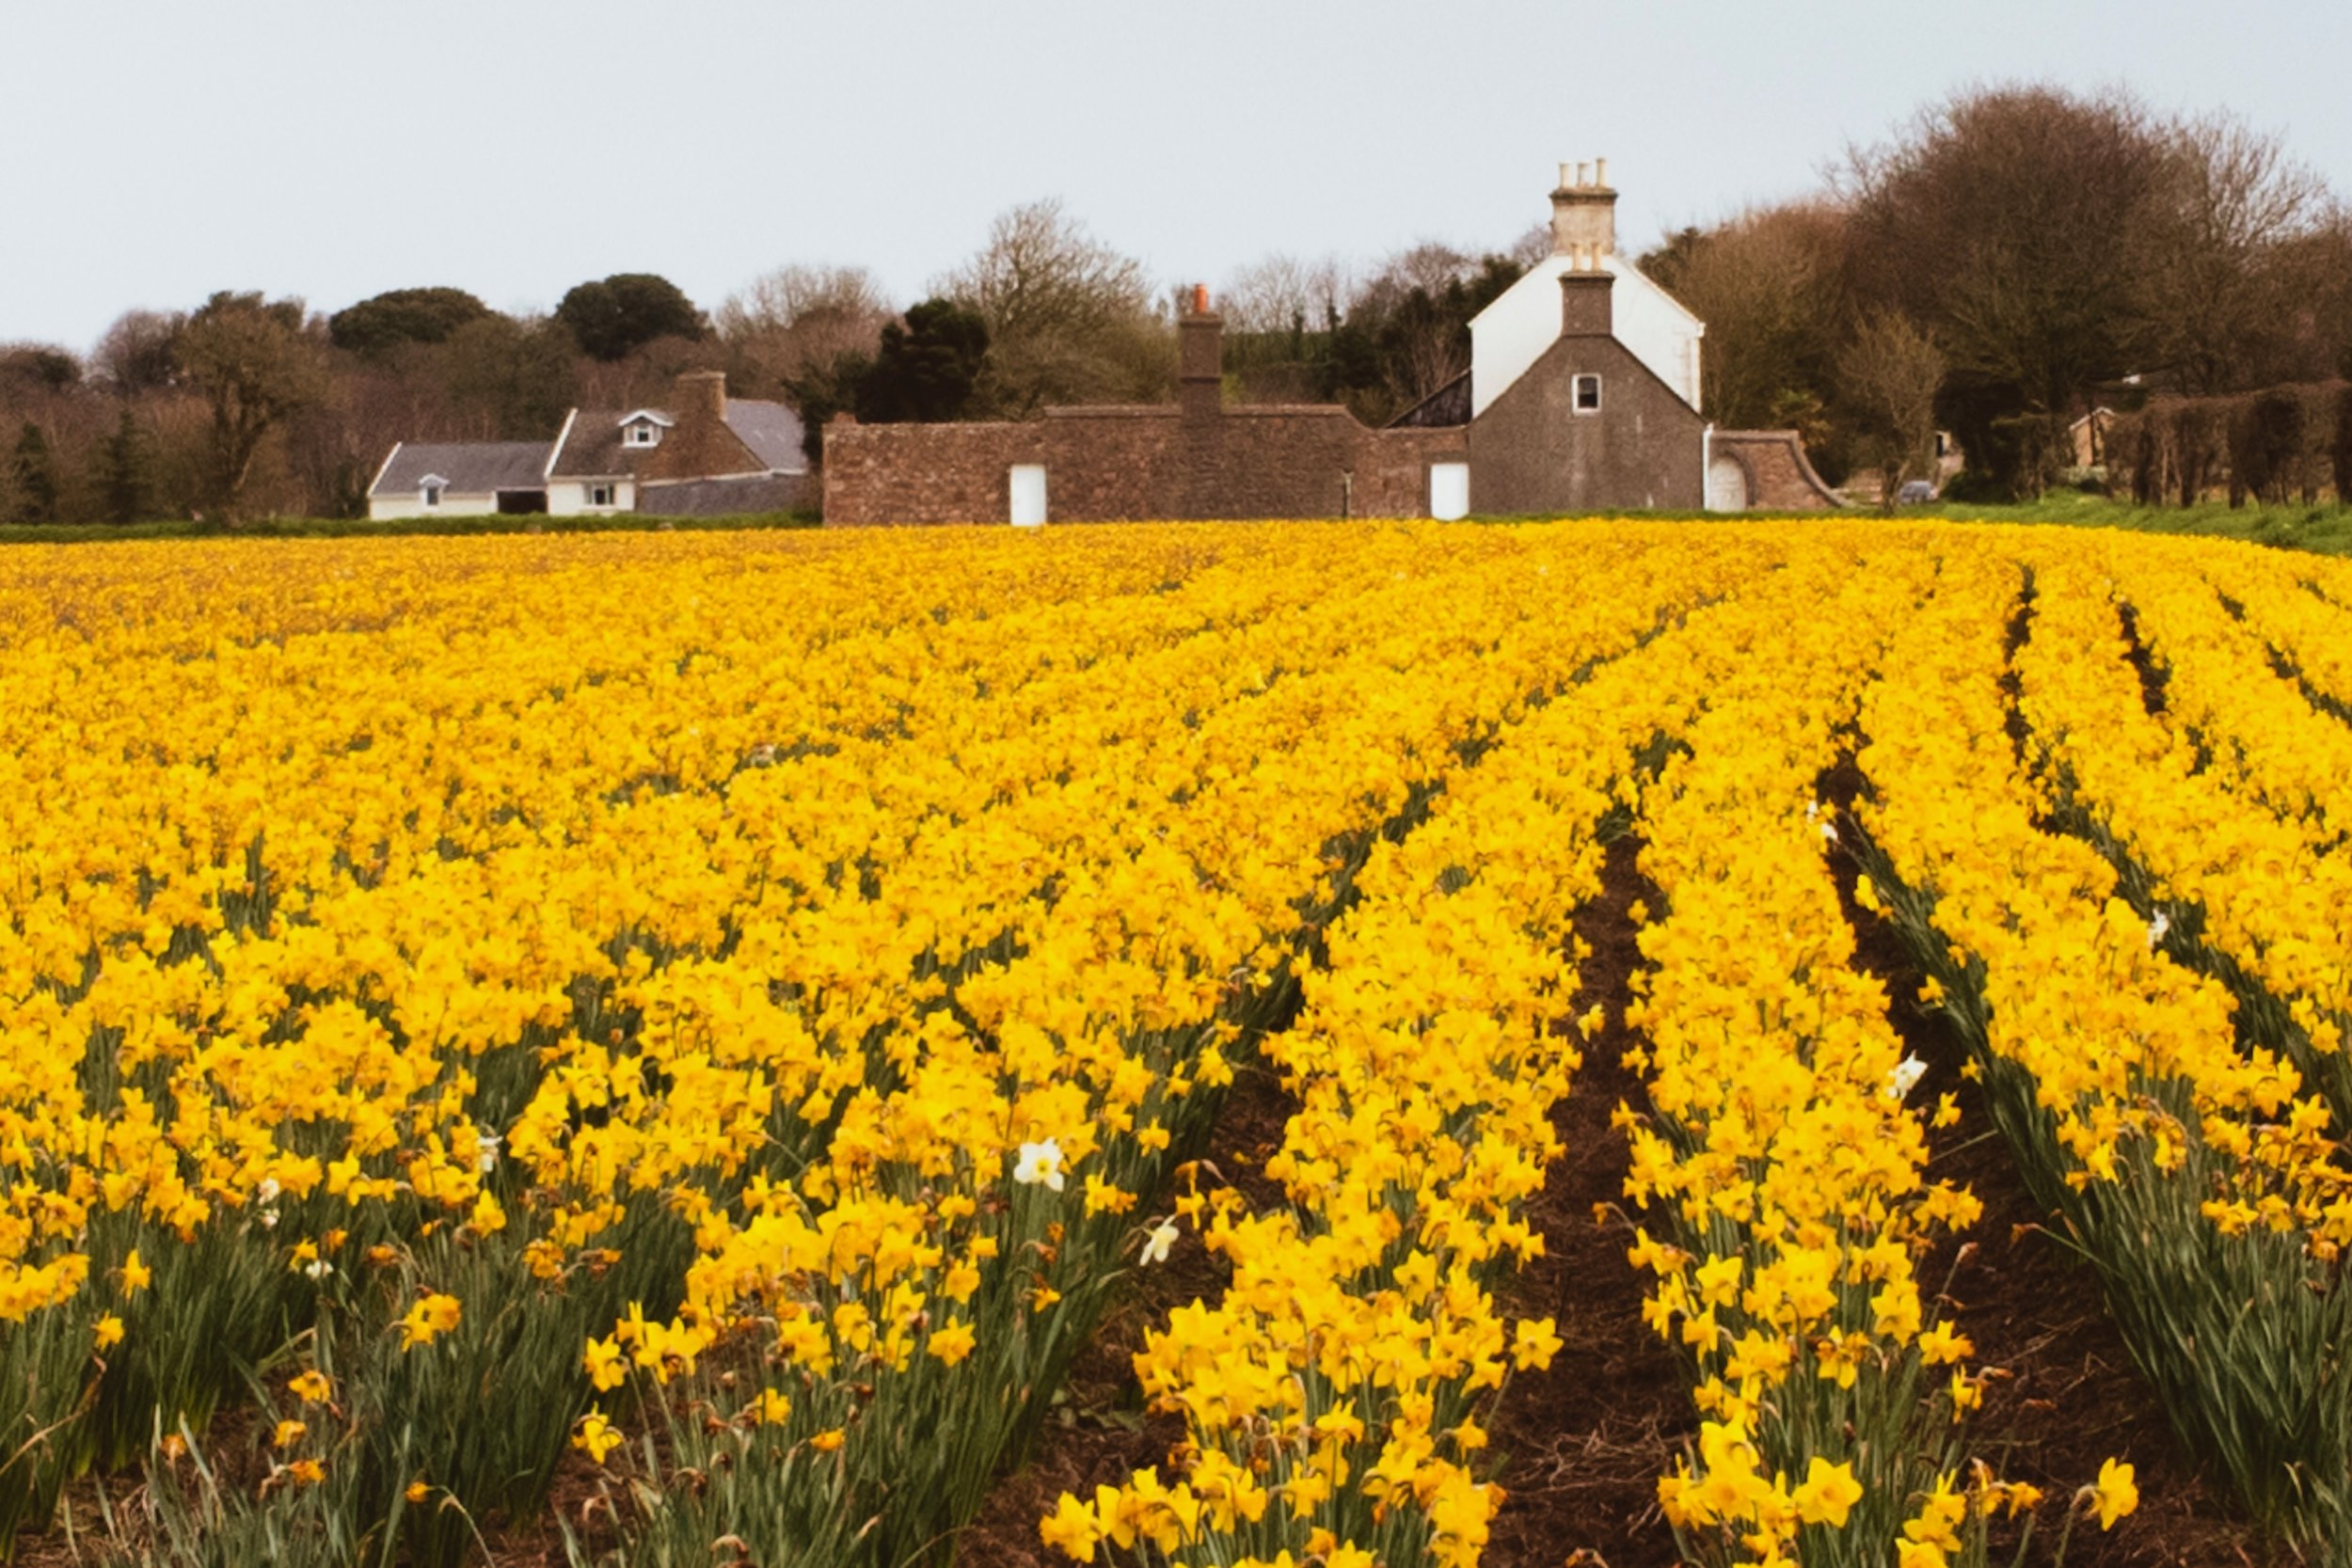 Typical Jersey farm -- you either see daffodils or potatoes!